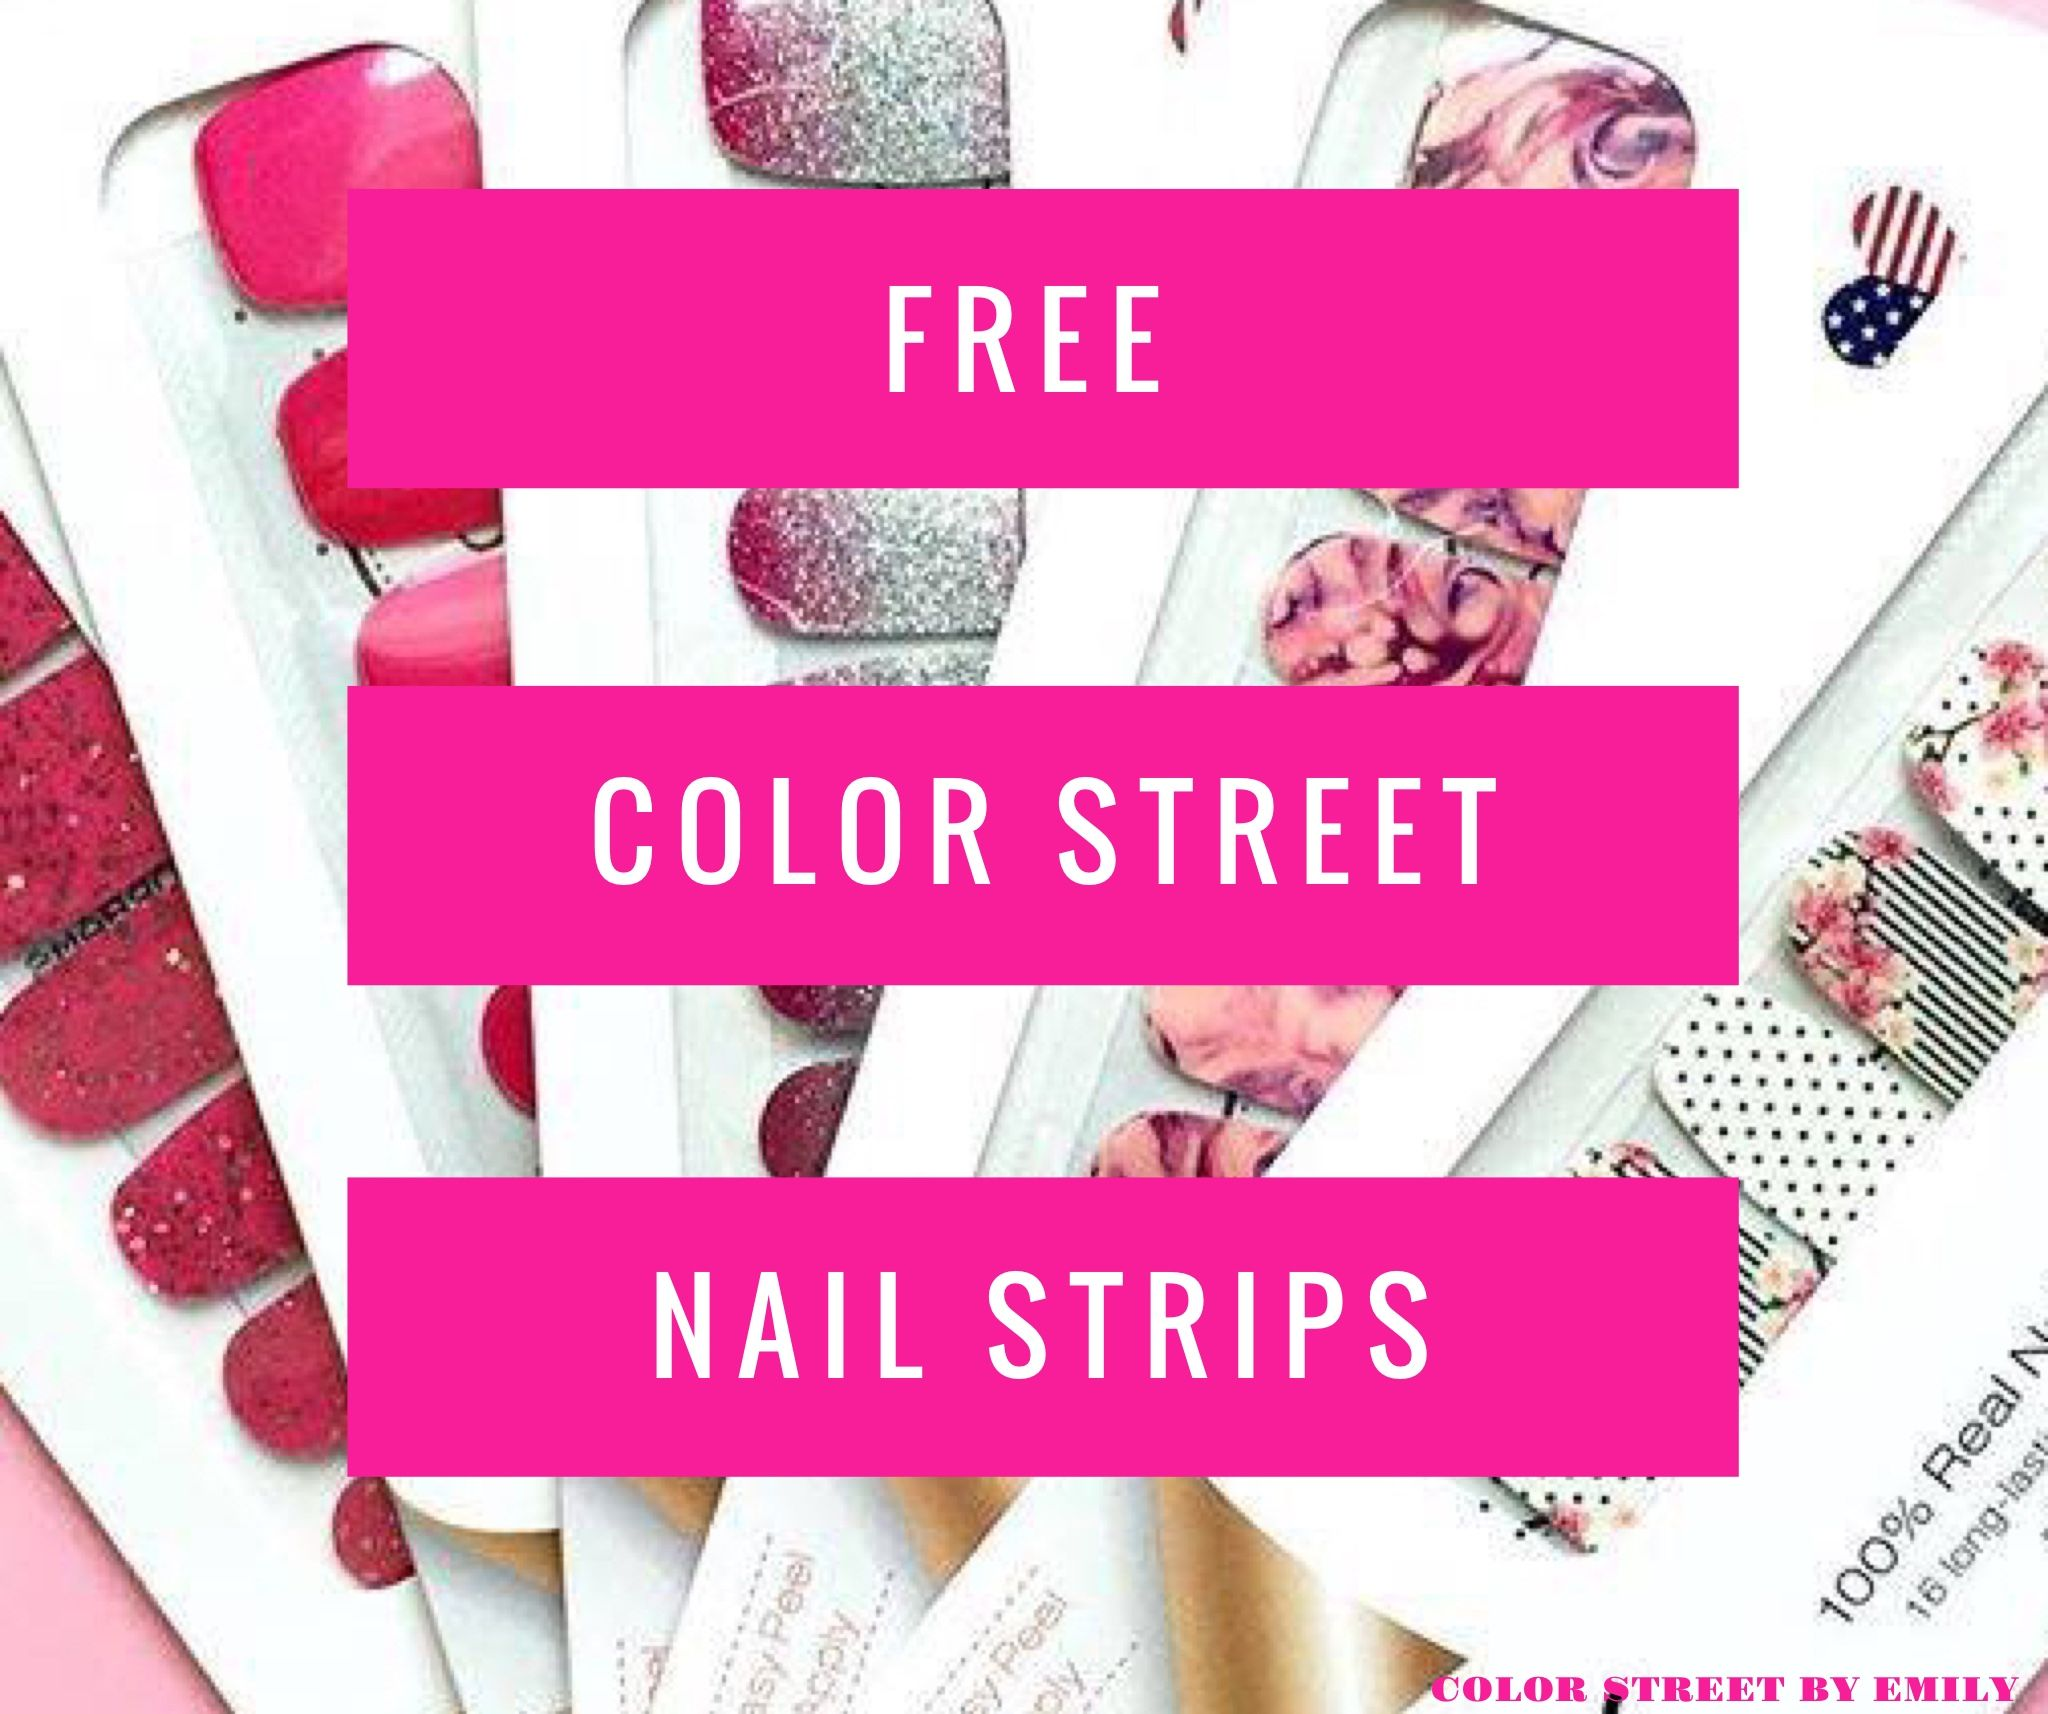 Looking for FREE Color Street nail strips? Host a party!! We are very generous to our hostesses. Message me for more information!!